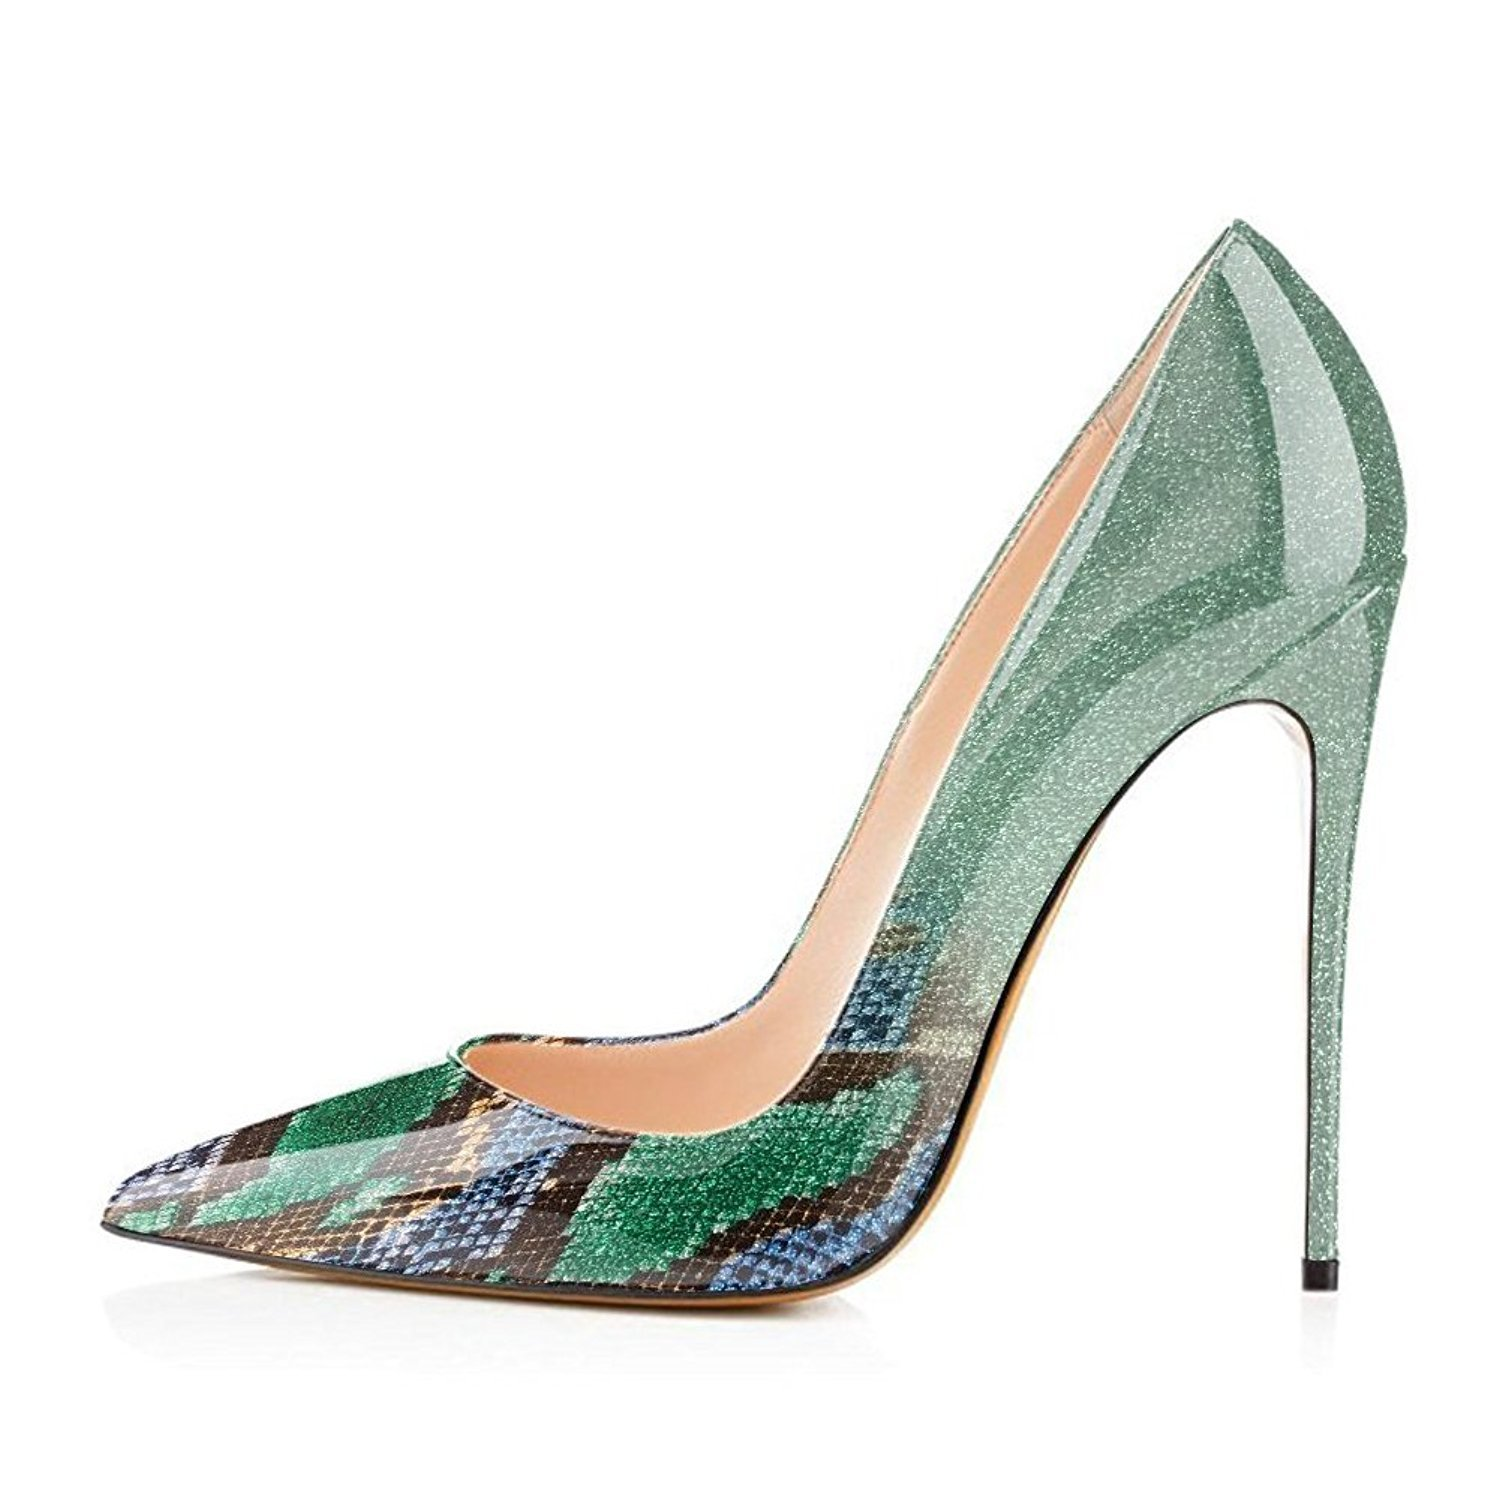 VOCOSI Pointy Toe Pumps for High Women,Patent Gradient Animal Print High for Heels Usual Dress Shoes B077GSLLPV 15 B(M) US|Gradient Green to Snake Print With 12cm Heel Height 2ecf3b